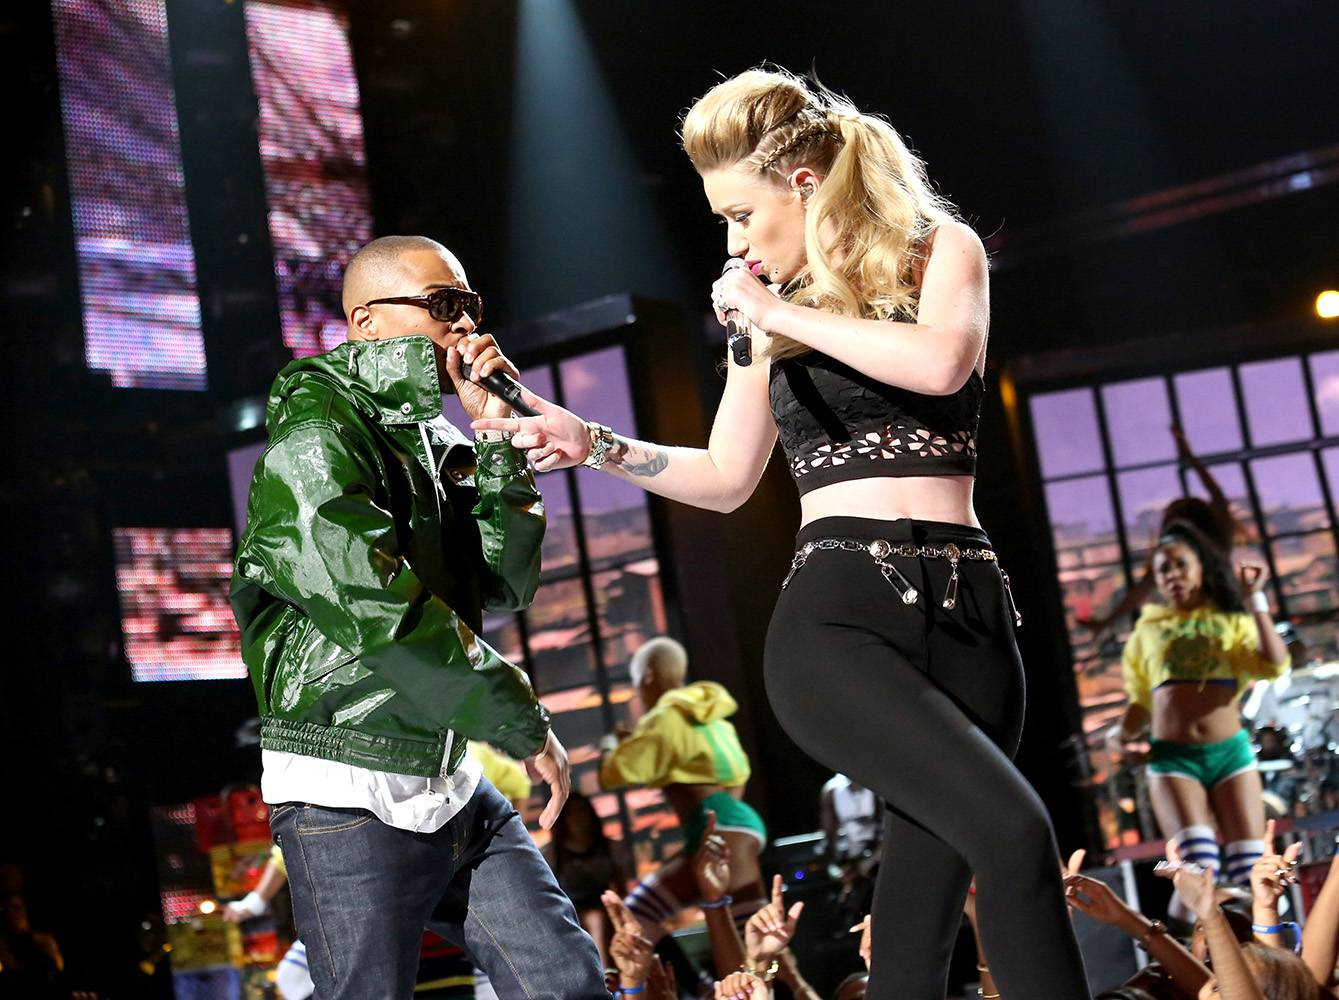 Iggy and Tip